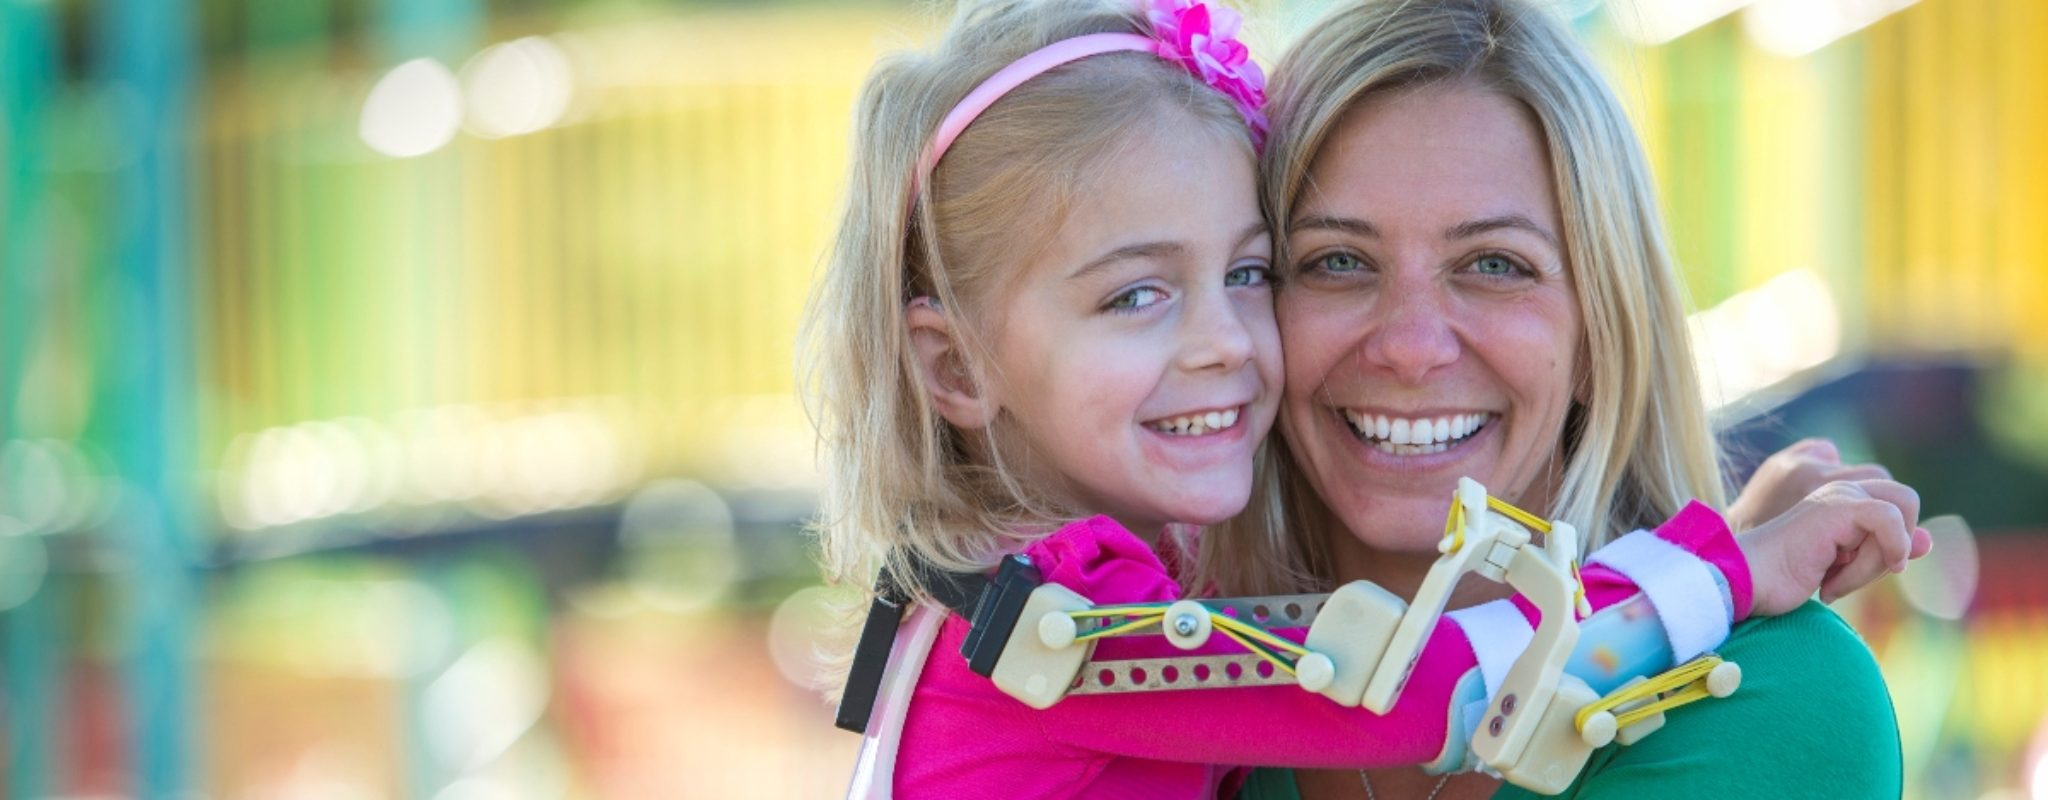 Research Brings Hope to People Living With Rare Diseases by Heidi Kecskemethy and Terry Pedicone | Promise, Powered by Nemours Children's Health System